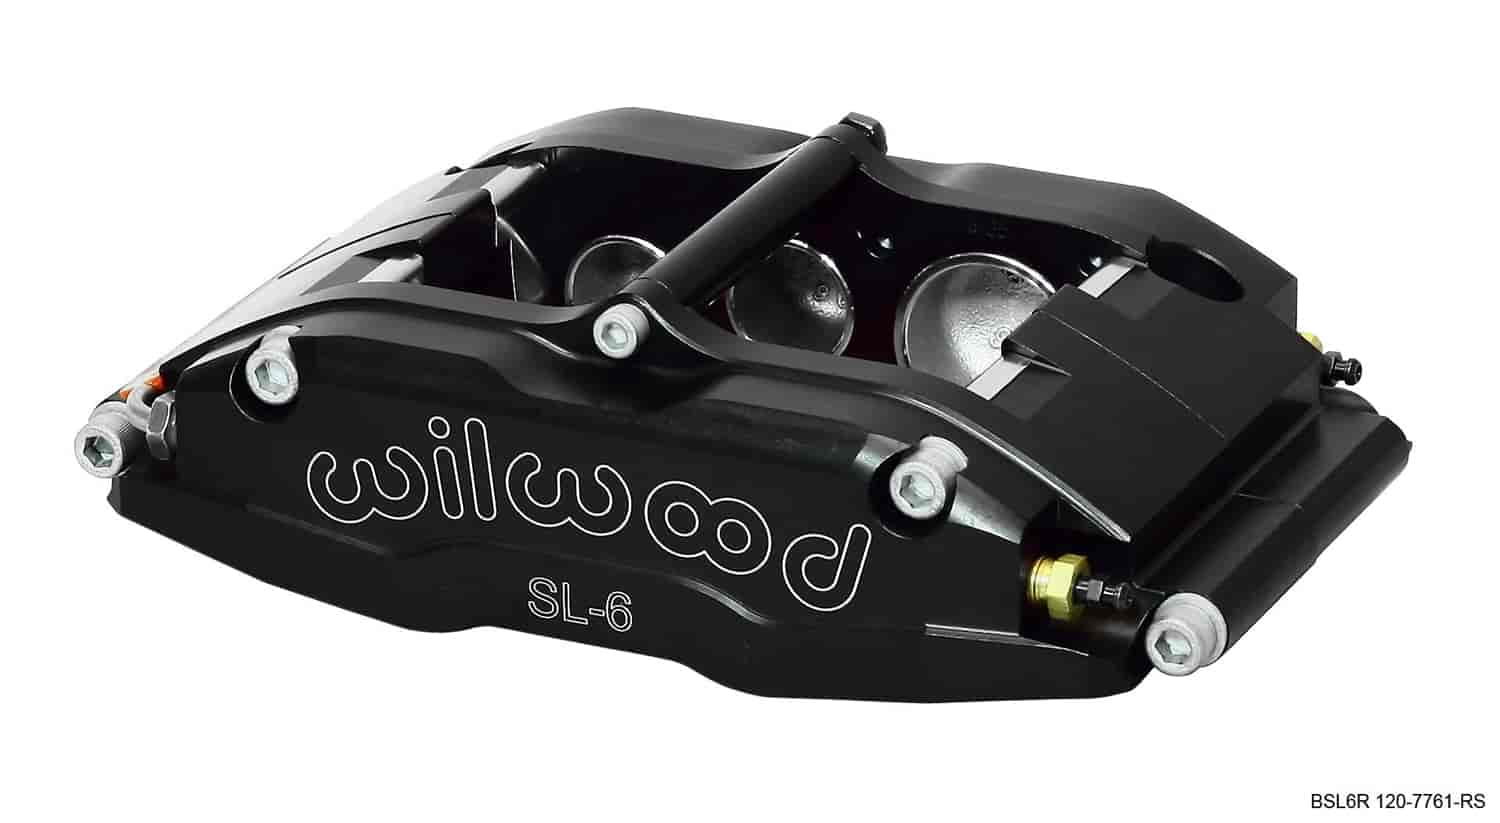 Wilwood 120-7761-RS - Wilwood SL6R 6 Piston Radial Mount Billet Aluminum Brake Caliper